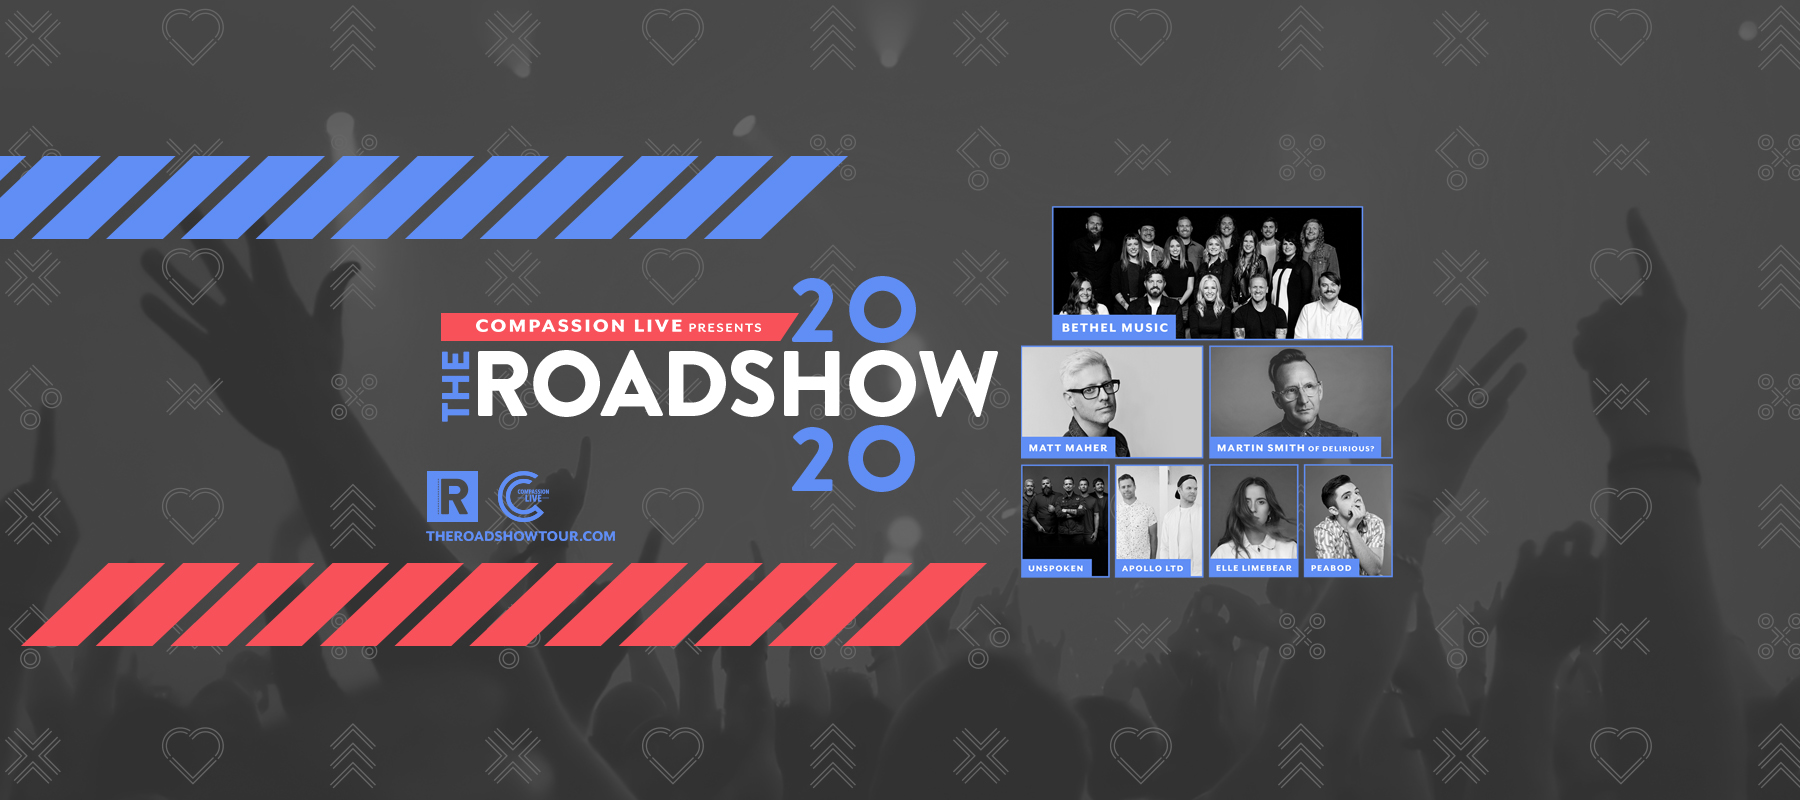 The Roadshow 2020 – Albuquerque, NM logo